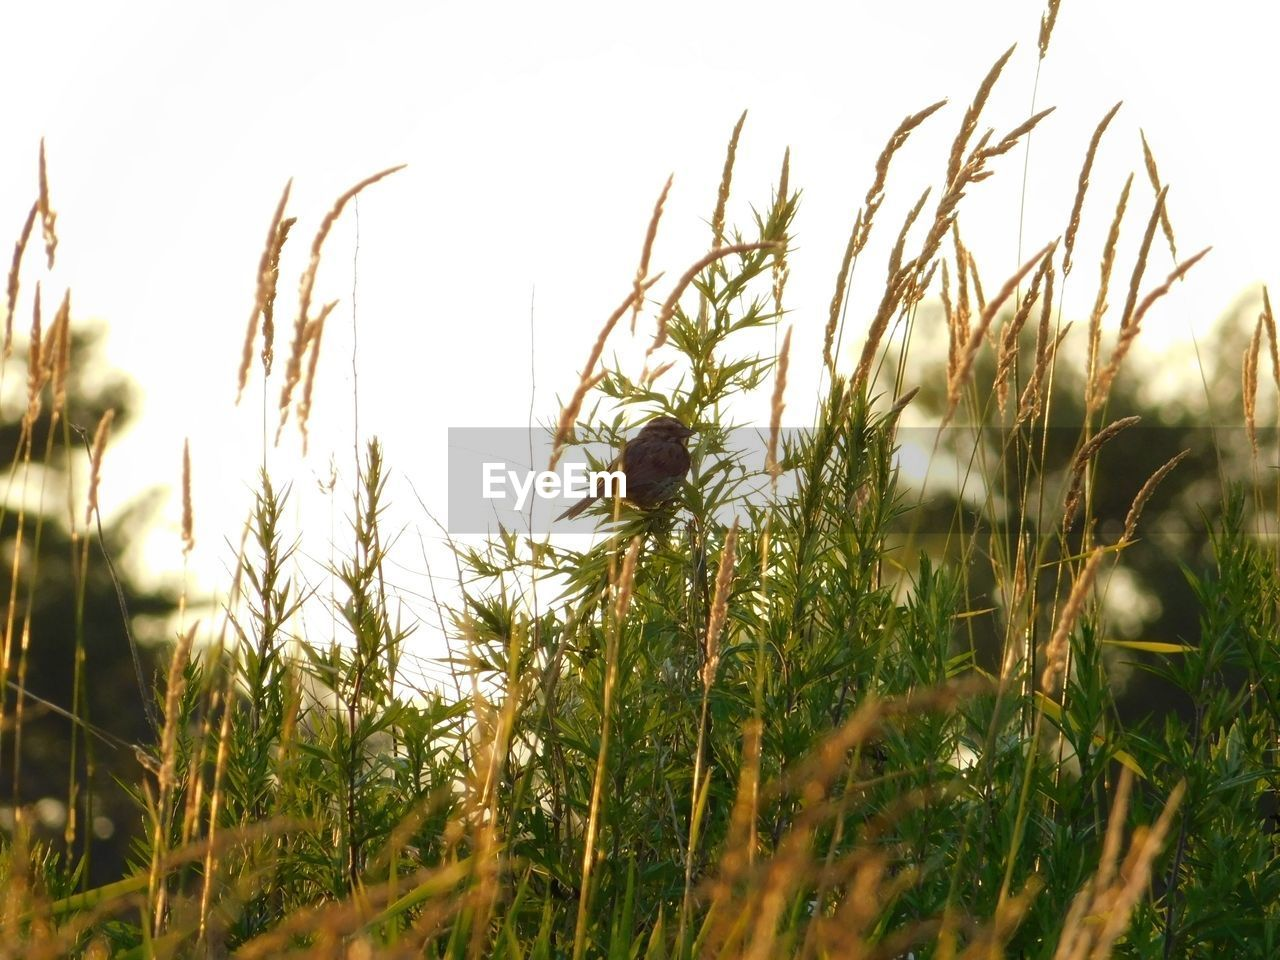 nature, grass, growth, one animal, field, selective focus, plant, outdoors, no people, day, animal themes, beauty in nature, clear sky, close-up, bird, sky